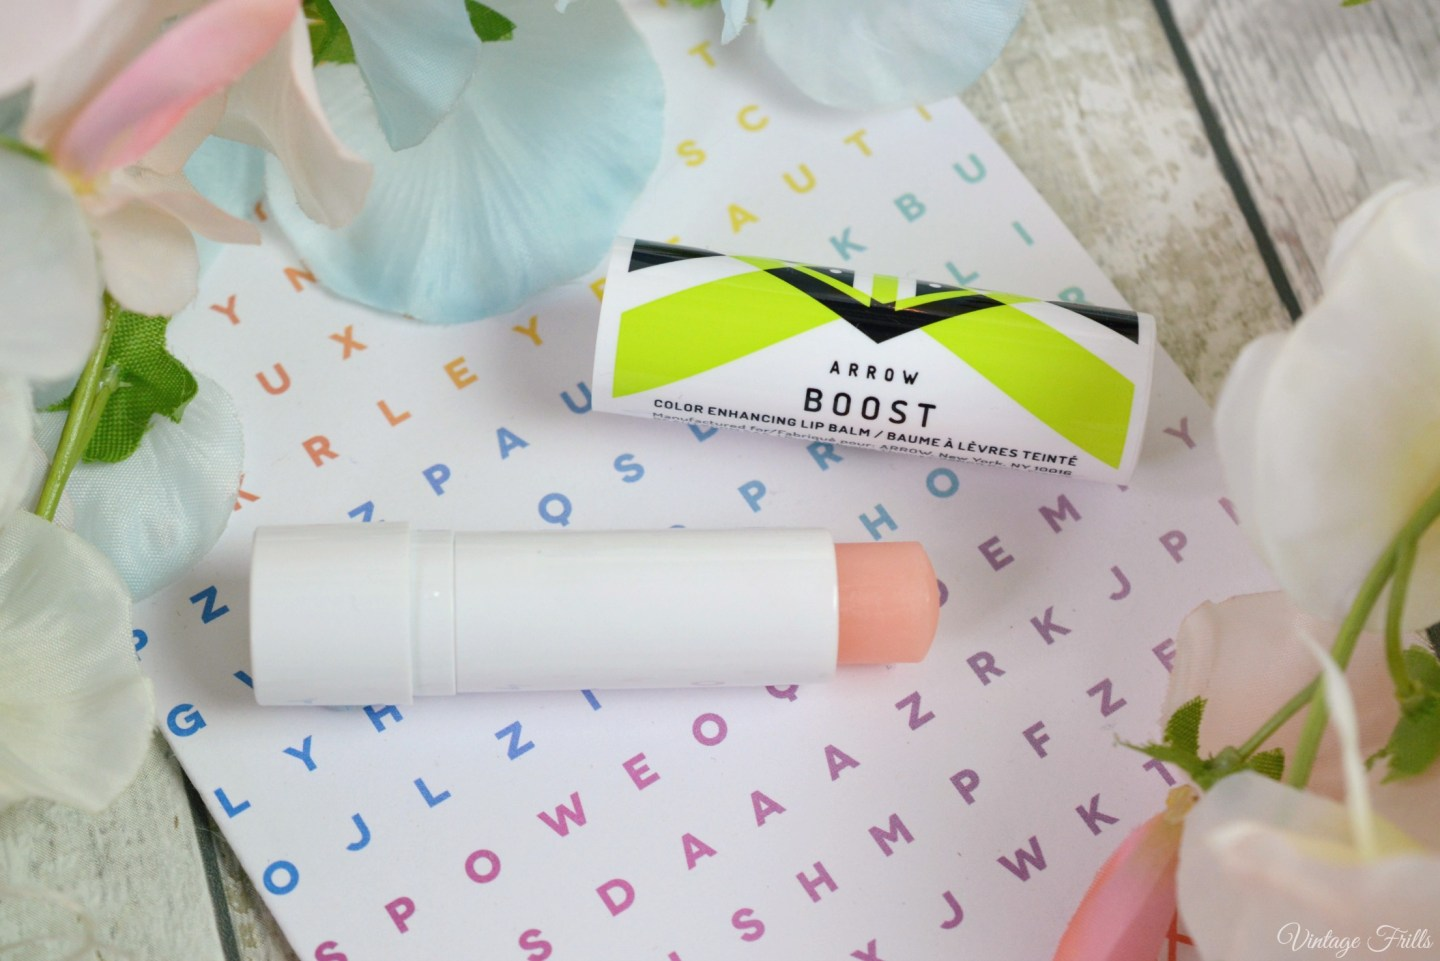 March Birchbox Arrow Boost Colour Enhancing Lip Balm